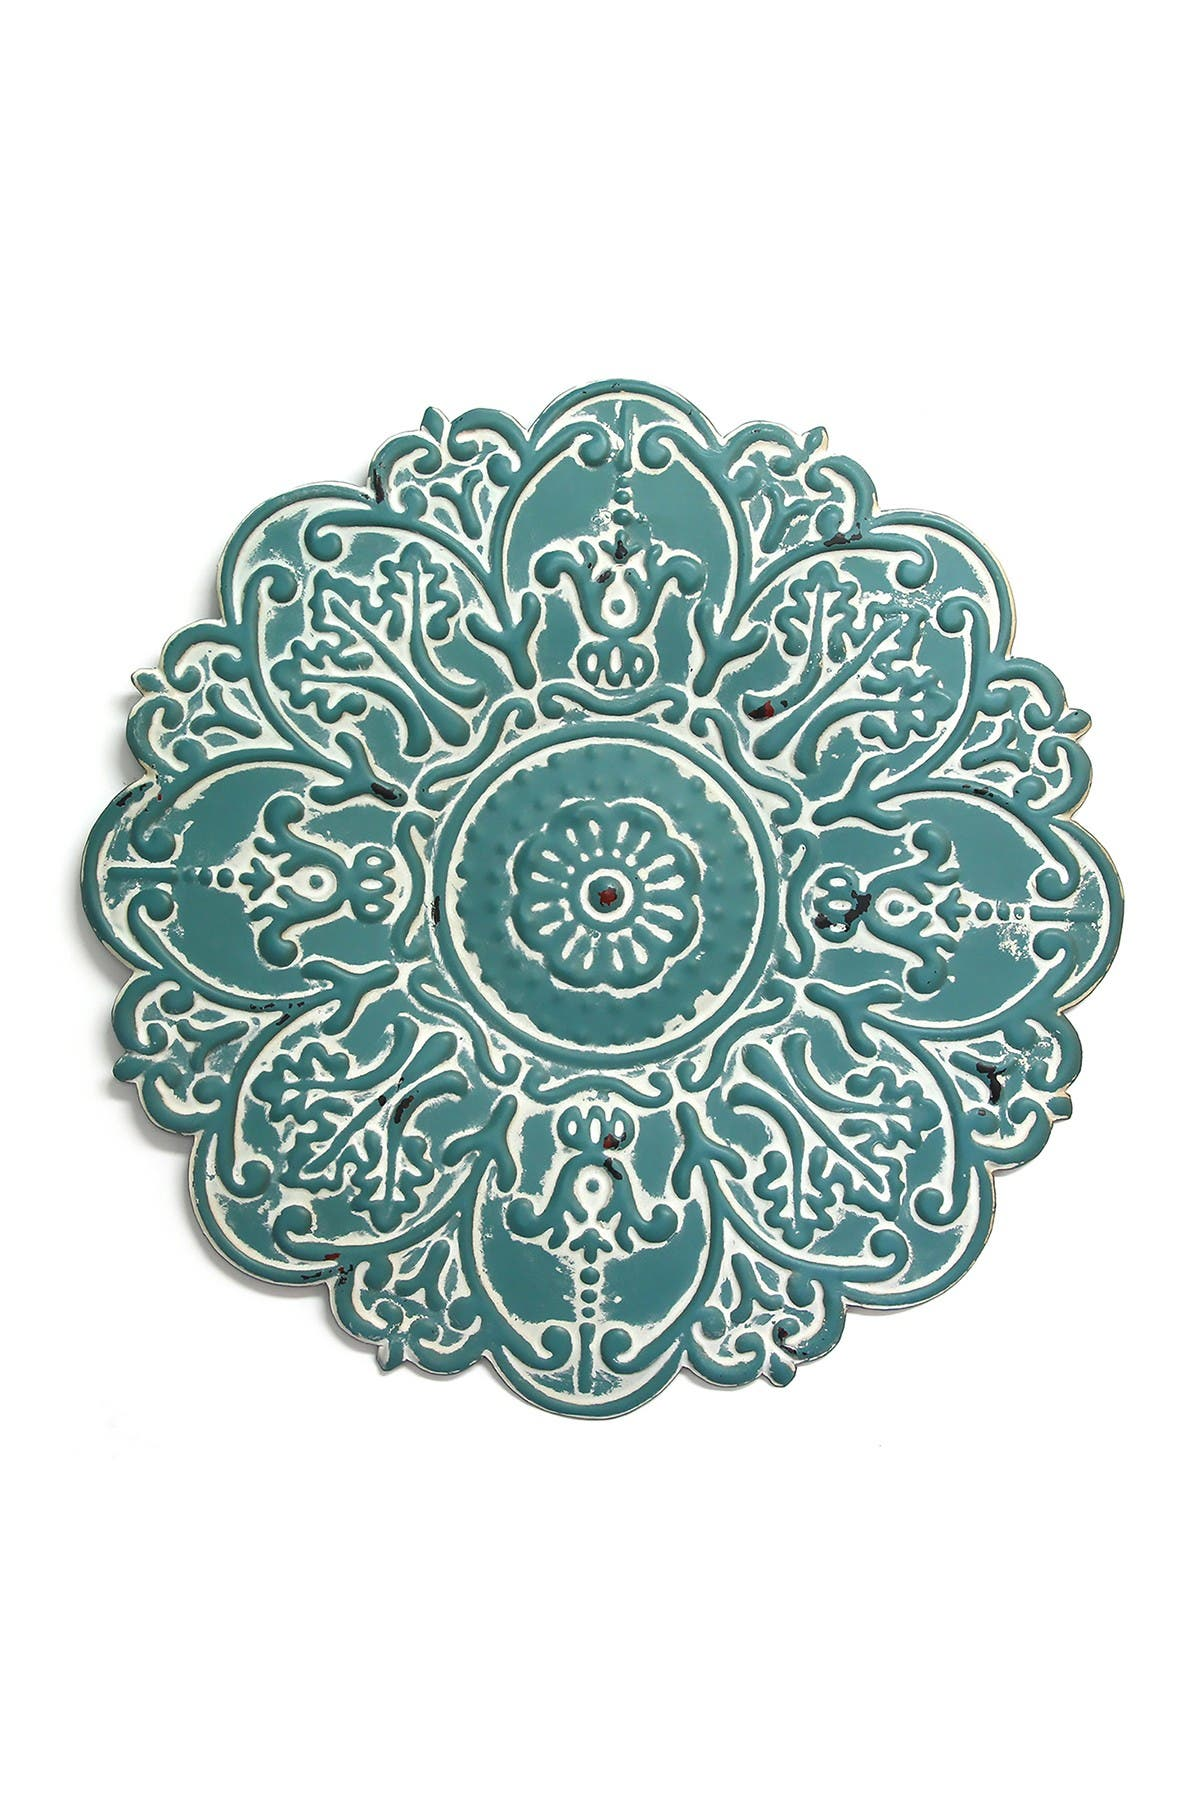 Image of Stratton Home Blue Small Blue Medallion Wall Decor